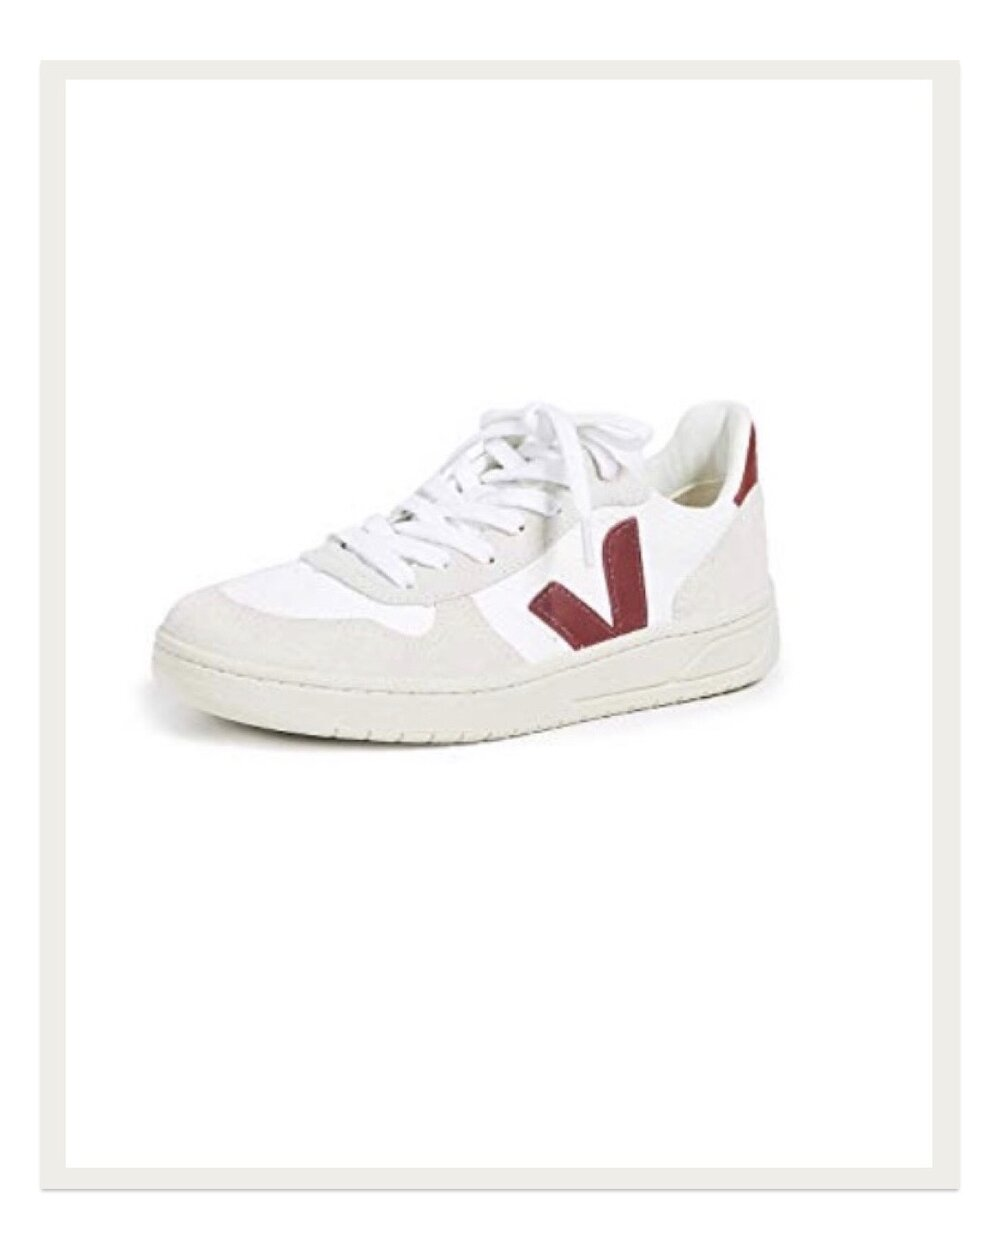 "A favorite amongst European ""it-girls,"" I've seen these Veja sneakers paired with everything from jeans to cocktail dresses, and they still look cool. I will admit they need need to be broken in, but I love throwing these on to run errands and feel super cute even though I'm in sneakers."